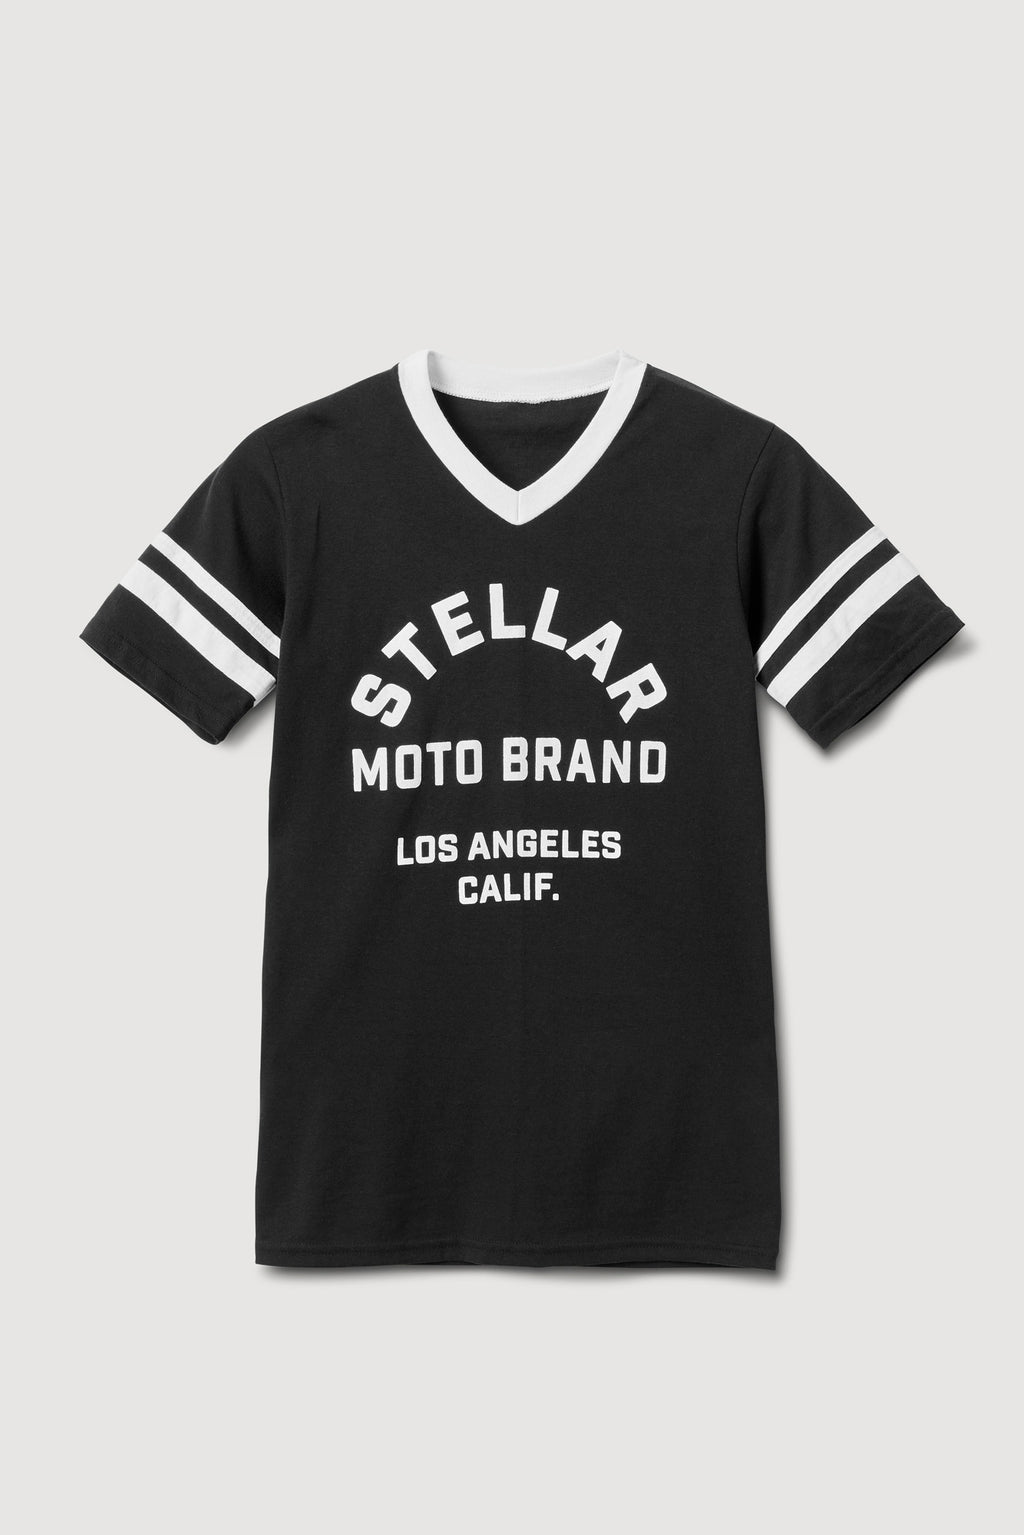 Stellar, Moto, functional art, moto gear, MOTO rally t-shirt, neckline, cotton, vintage, short sleeve, protective wear, functional fashion, motorcycle, shirt, tee, retro, fashion